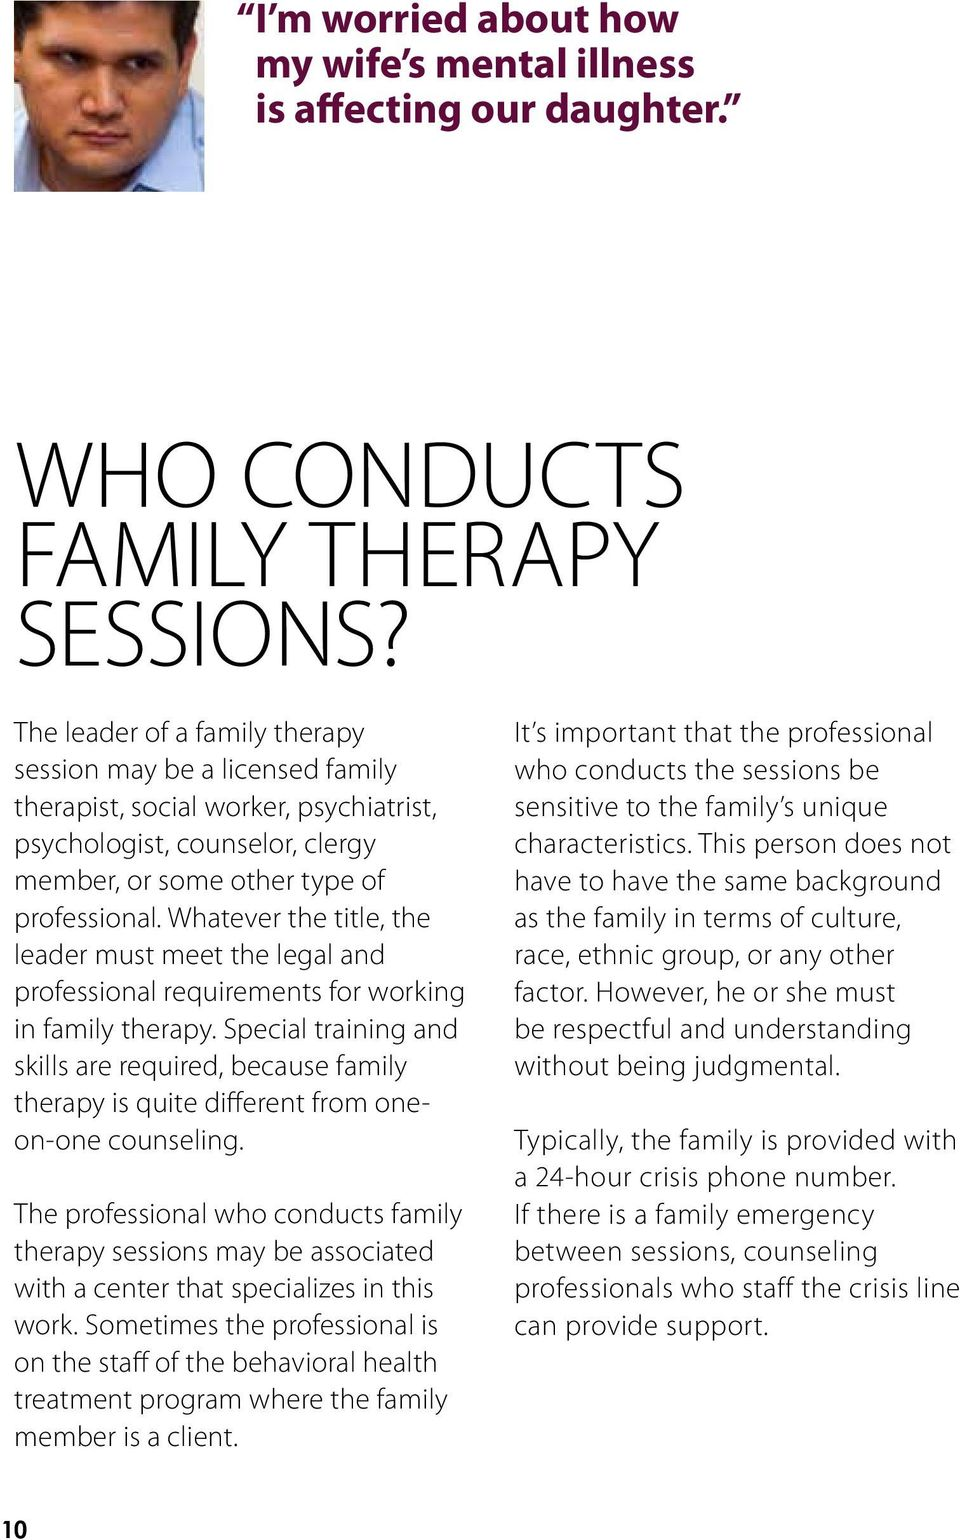 Whatever the title, the leader must meet the legal and professional requirements for working in family therapy.